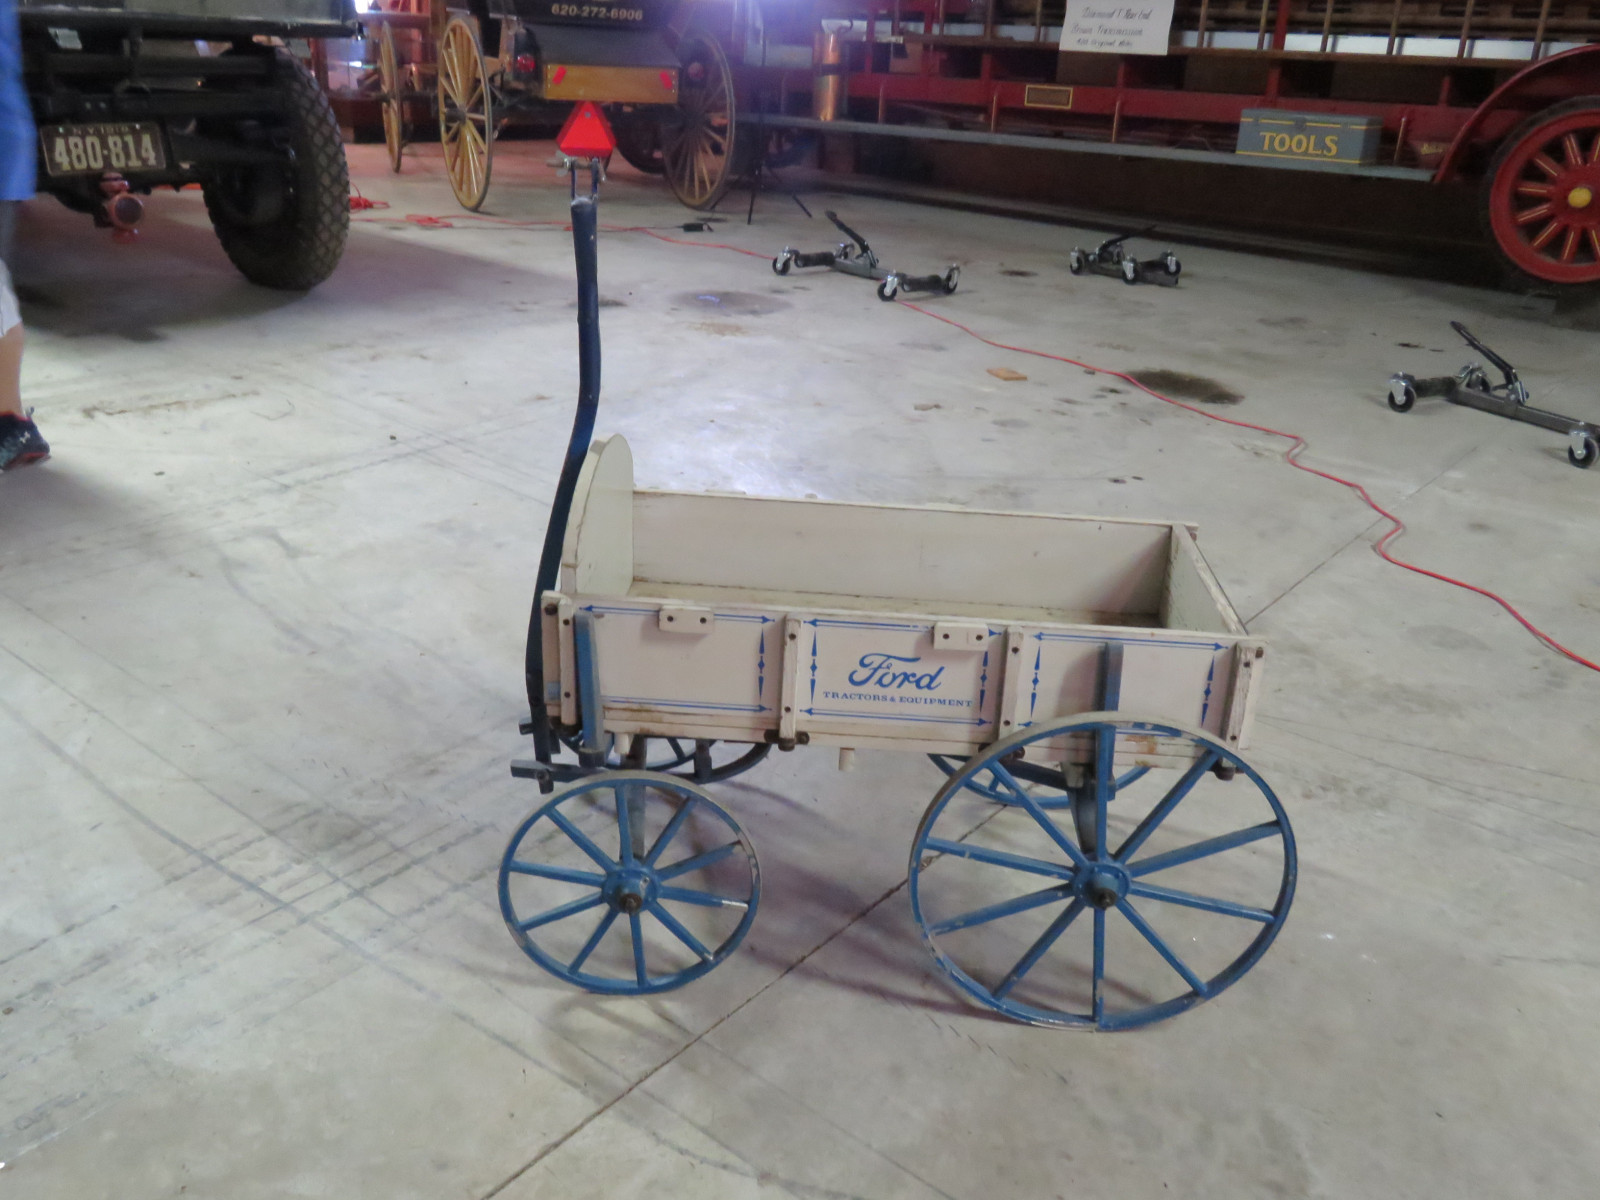 Small Wooden Wagon with Ford Script - Image 3